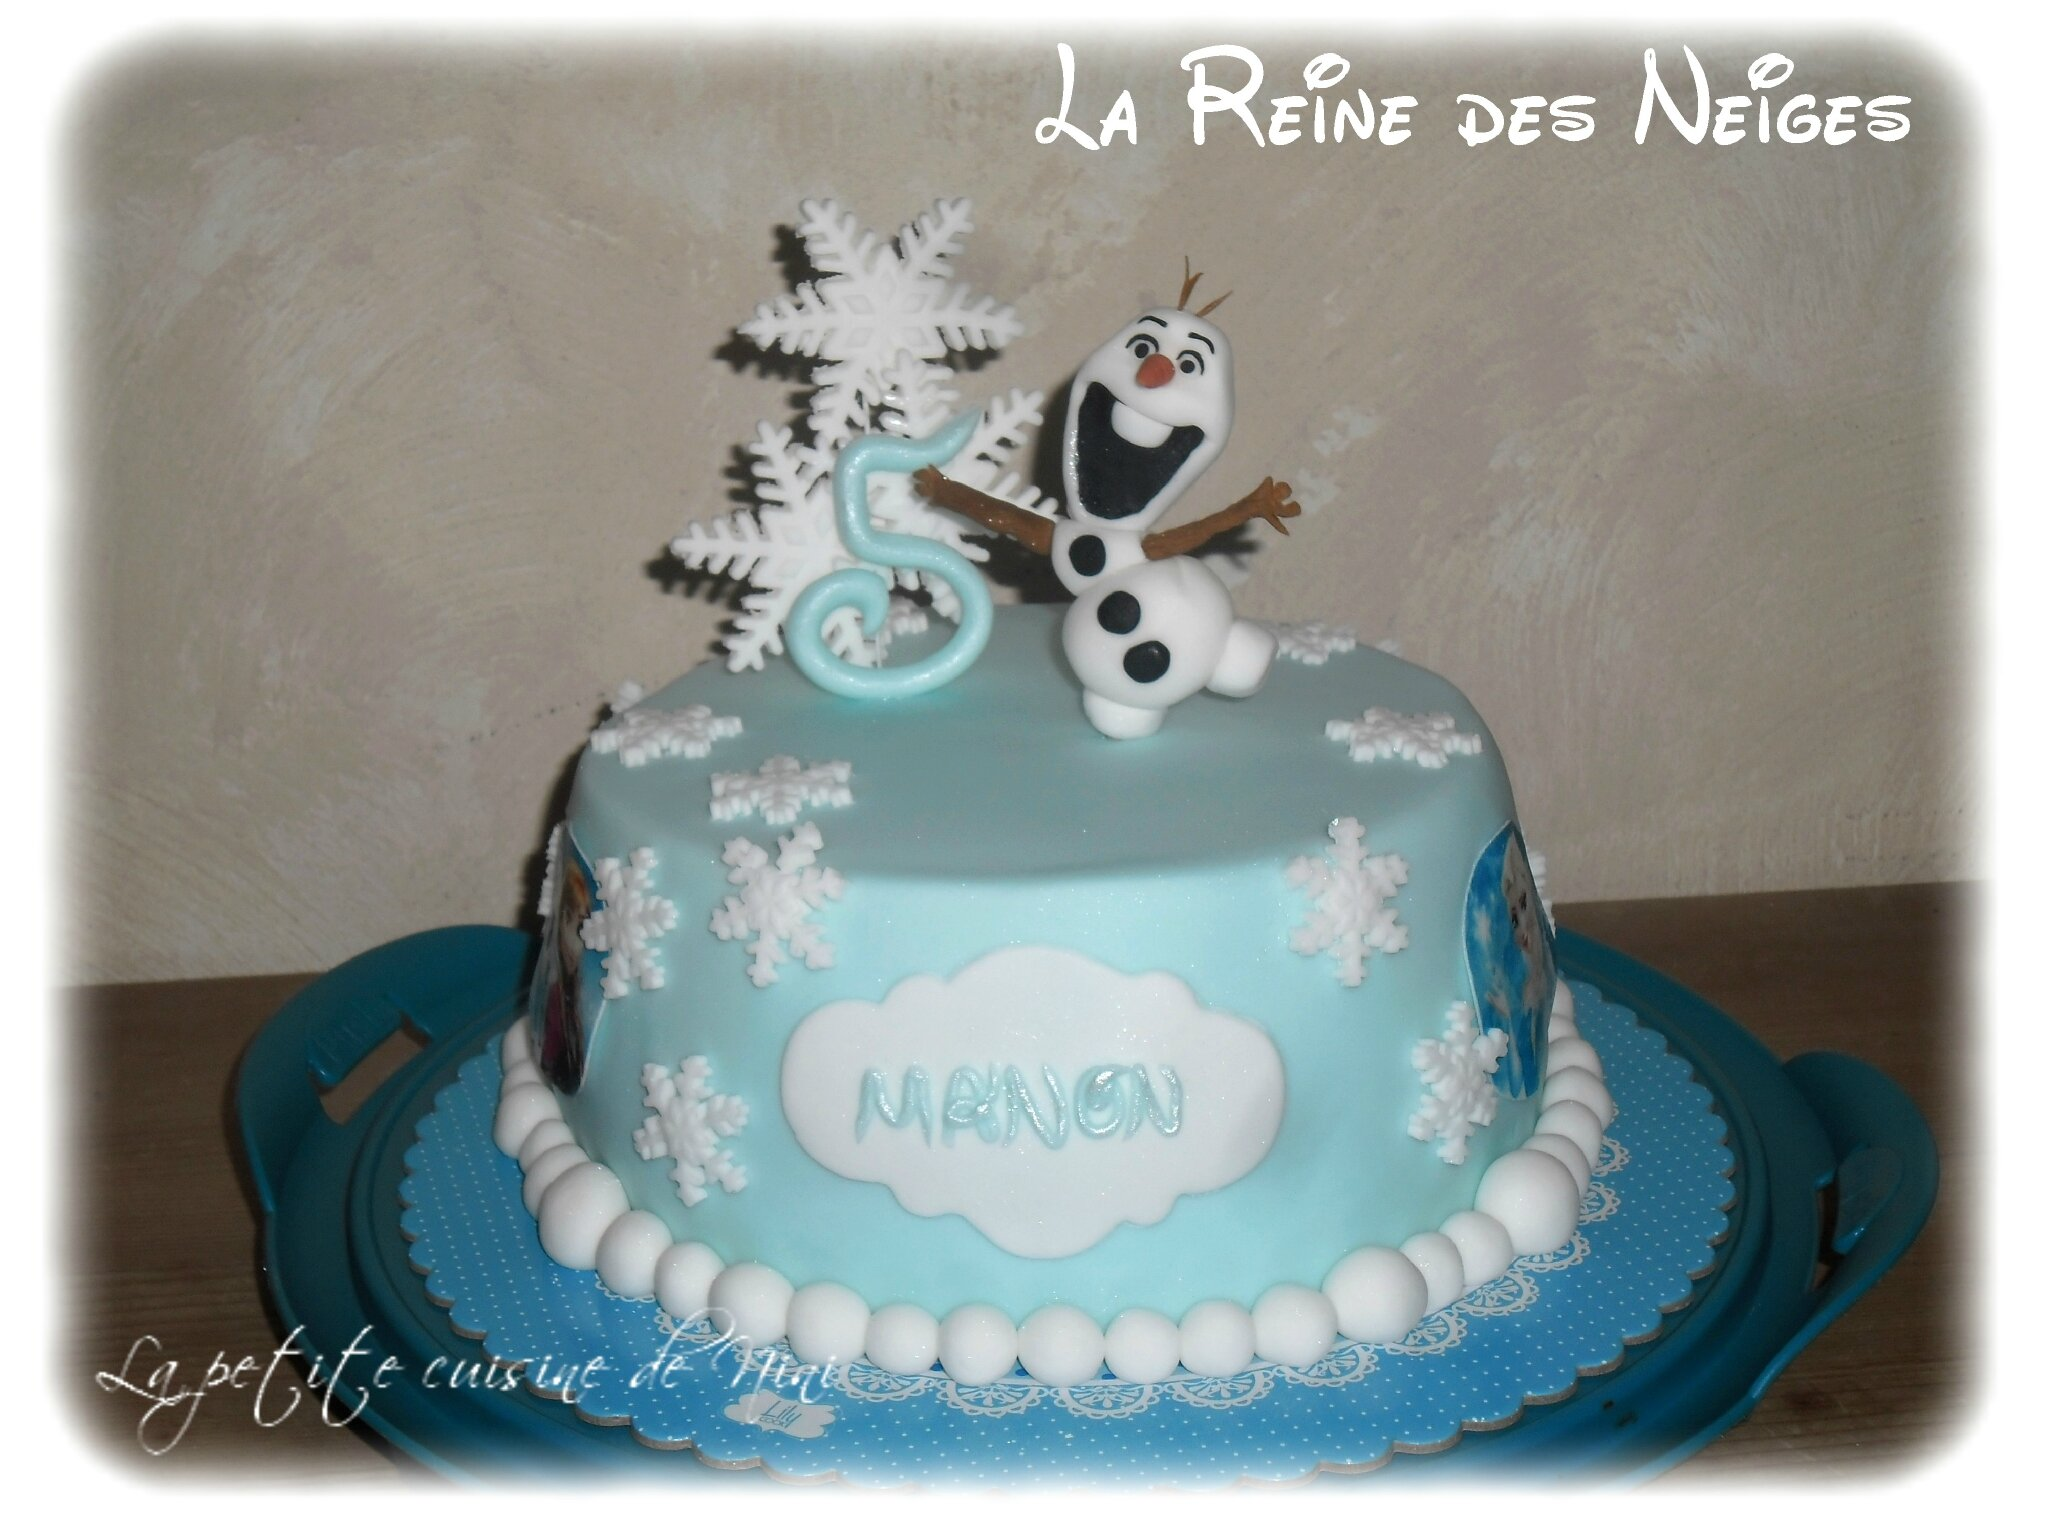 image gateau anniversaire la reine des neiges home baking for you blog photo. Black Bedroom Furniture Sets. Home Design Ideas